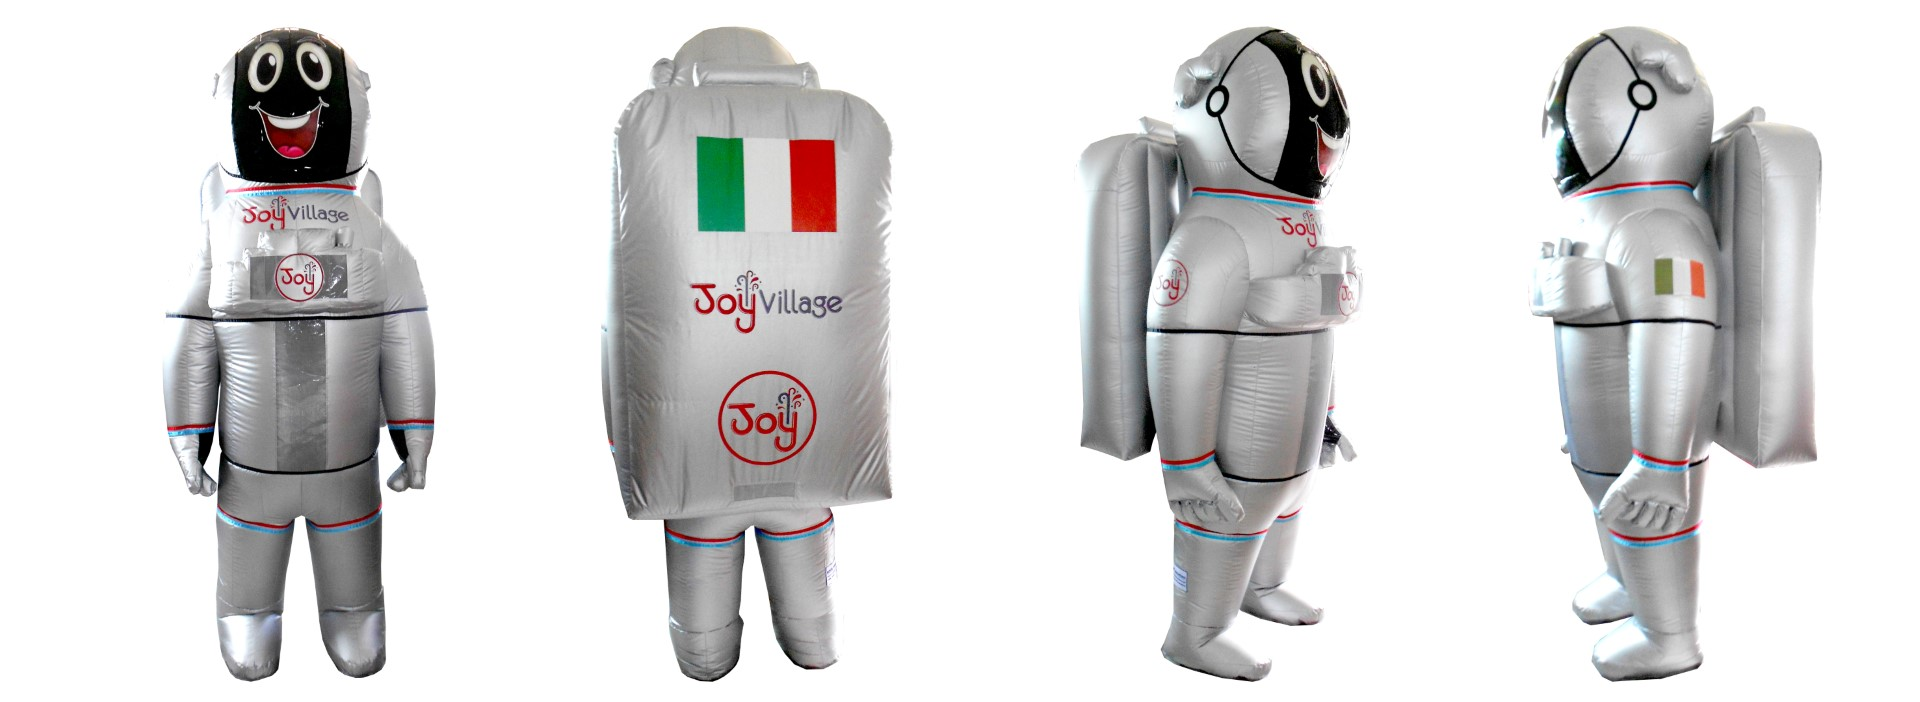 AstroGirl JoyVillage-Italy Inflatable Mascot